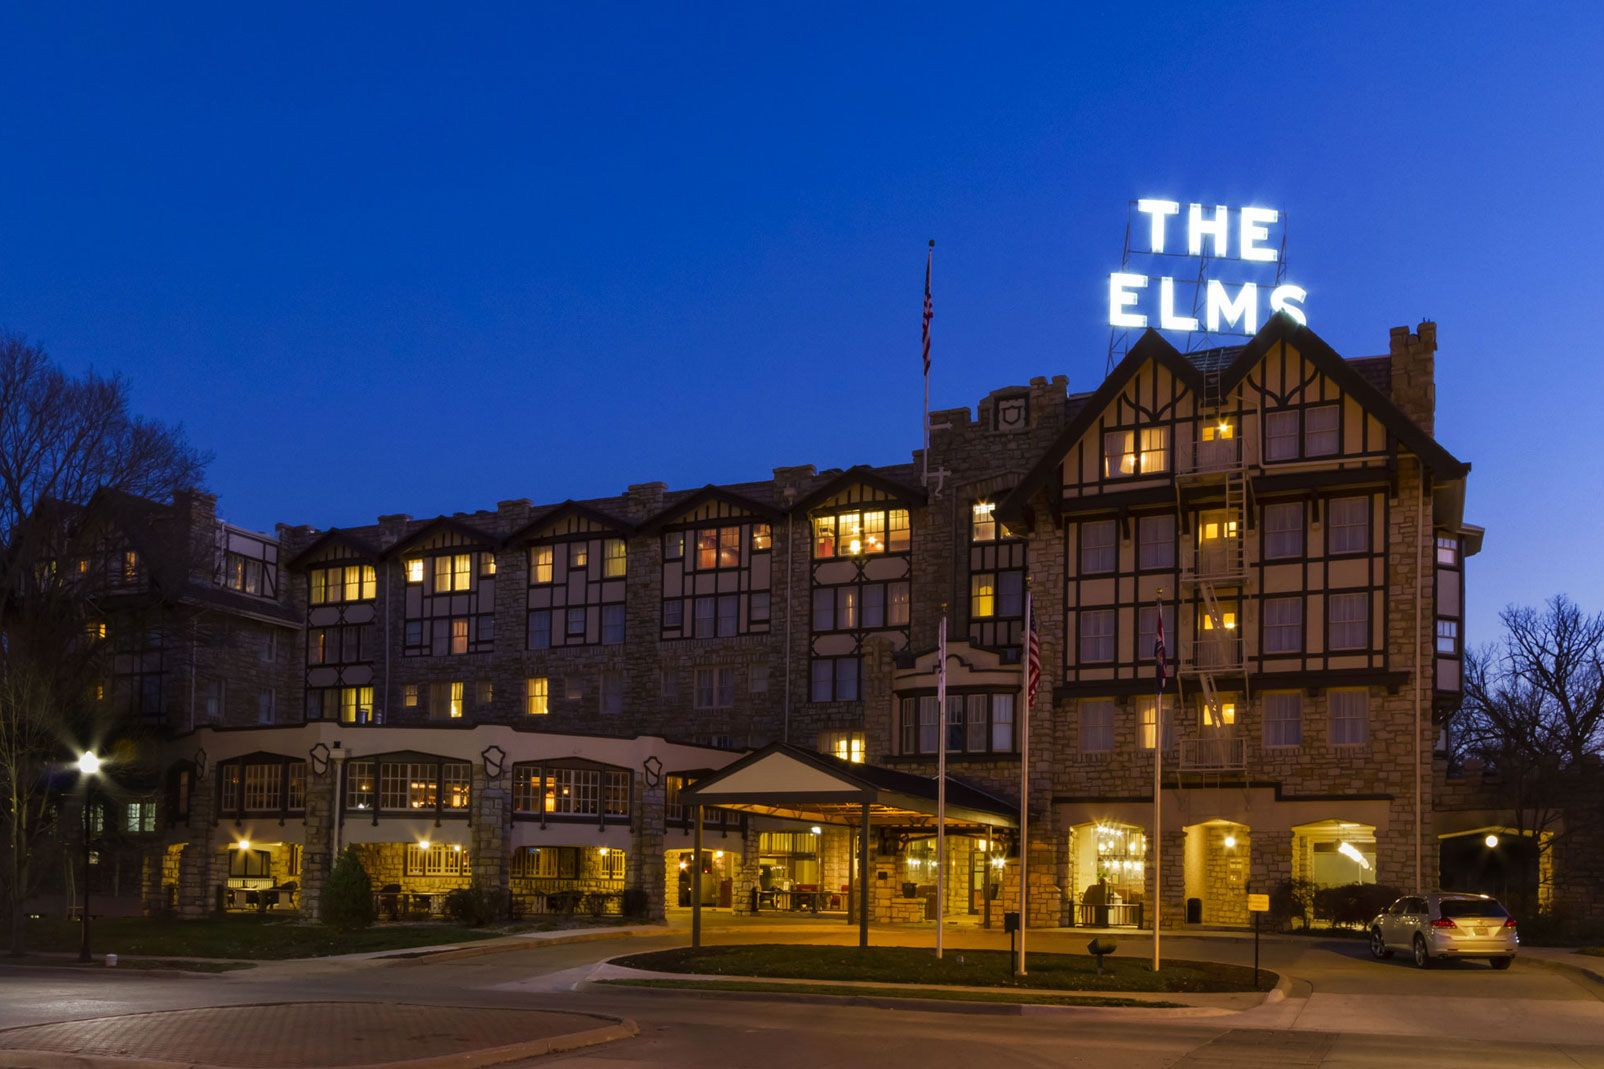 The Elms Hotel And Spa Hotels In Excelsior Springs Mo Just Found Out I M Going Tomorrow For My Birthday Present